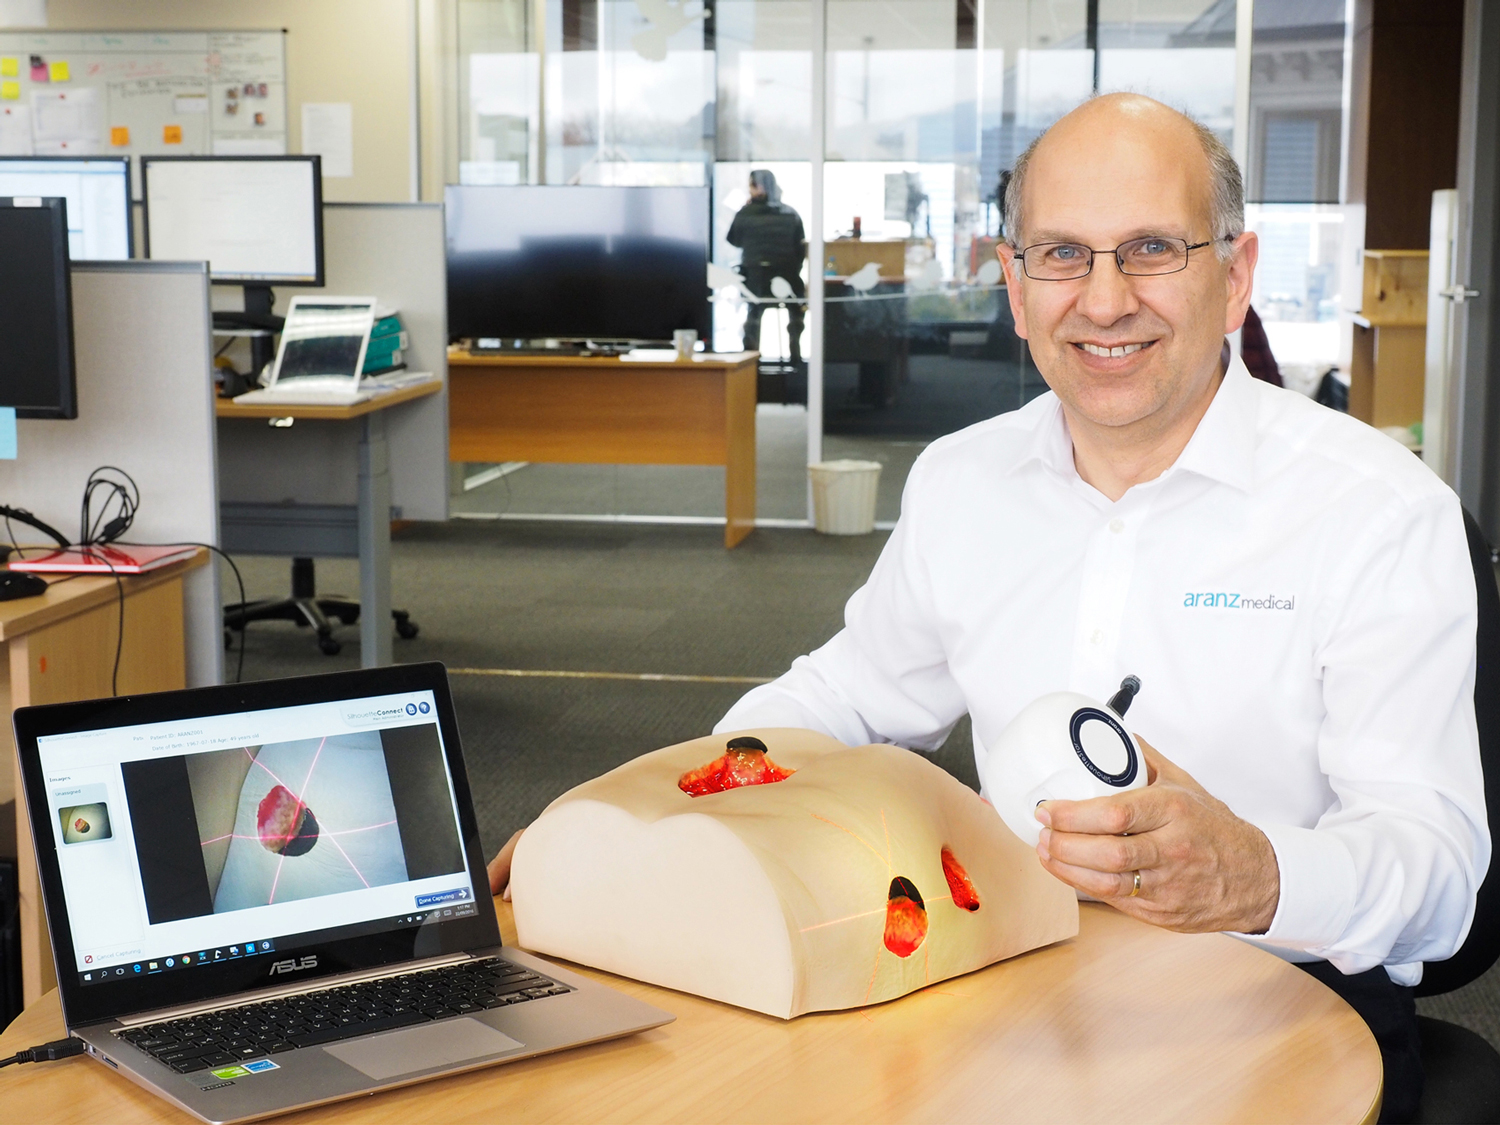 ARANZ Medical named Supreme Innovator of the Year